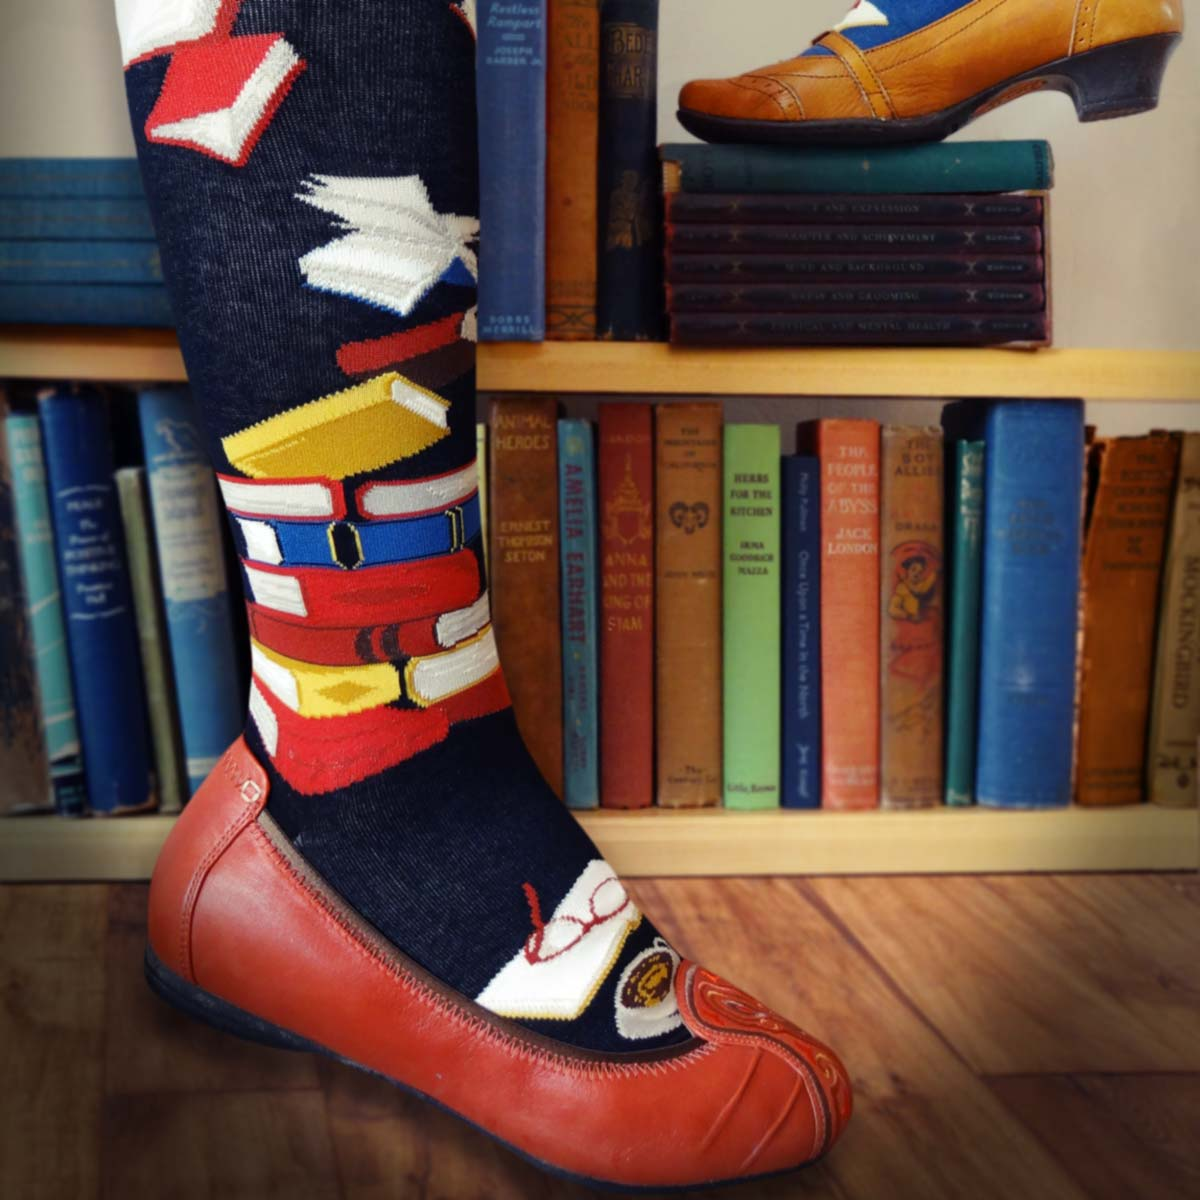 Book socks for women are black knee socks with red, yellow and blue books on them.